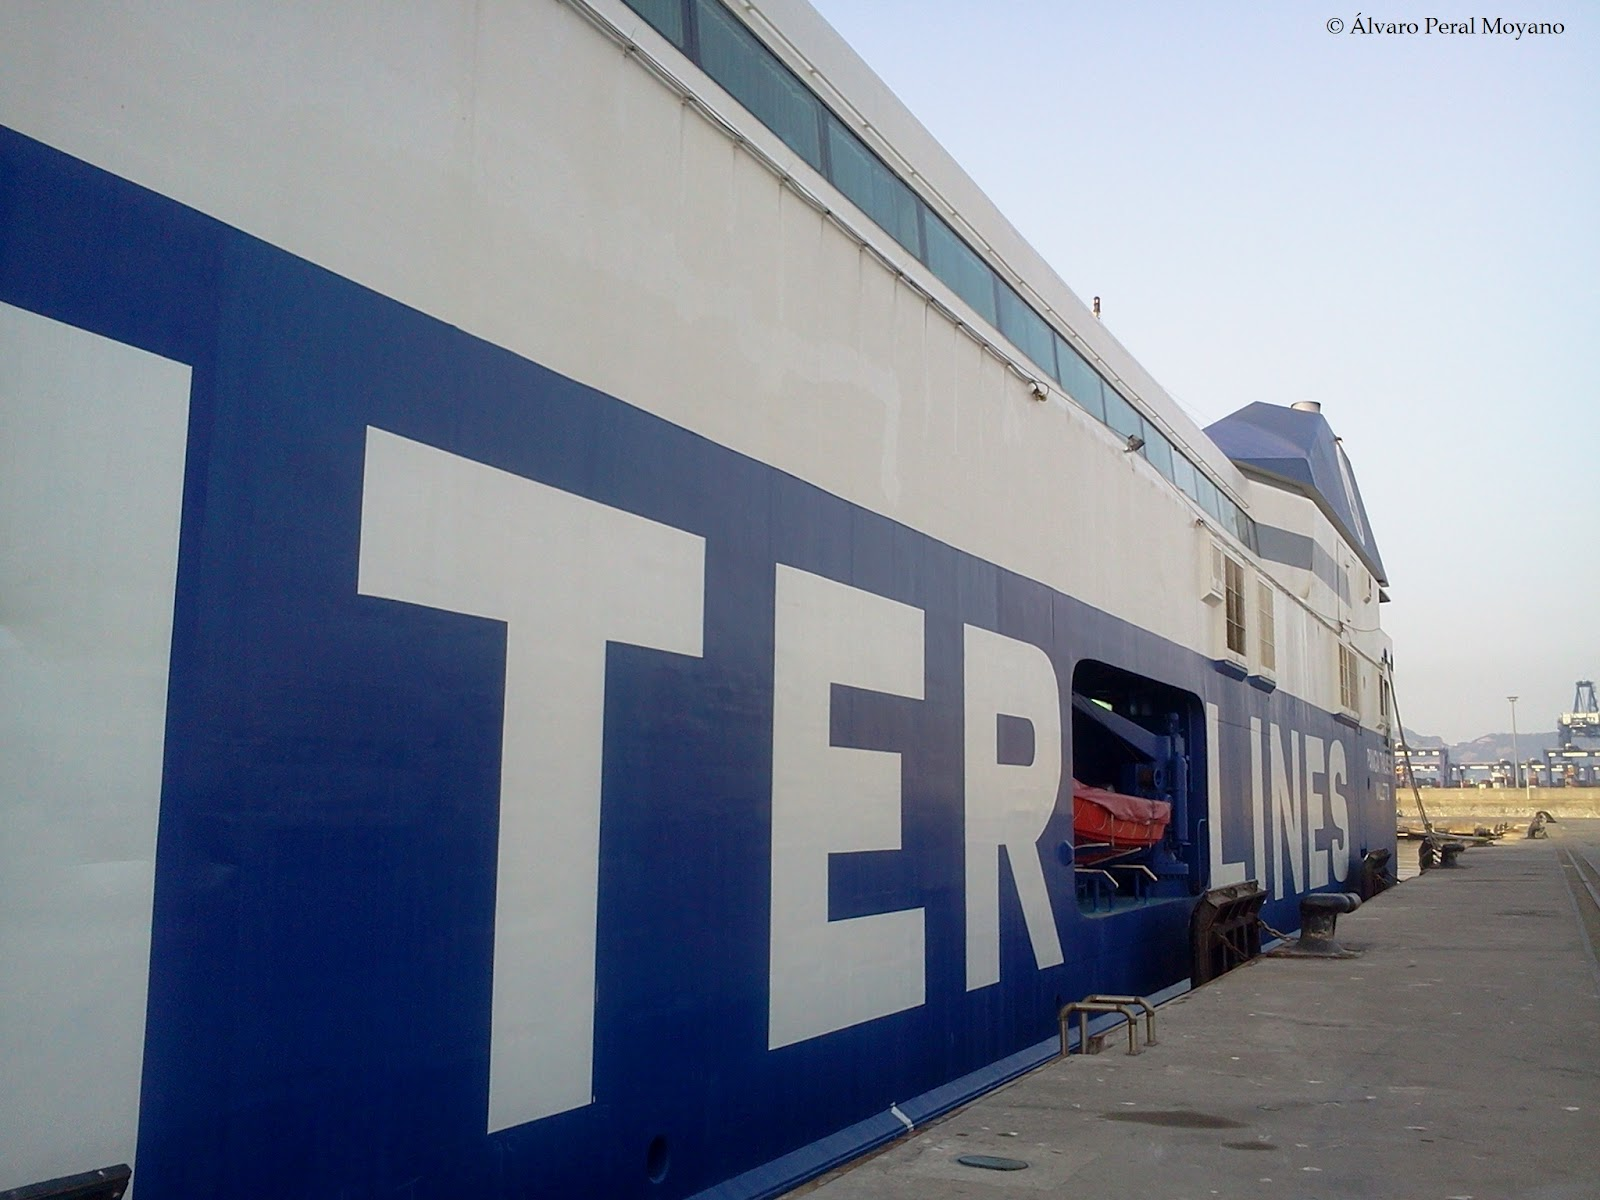 World wide ferries exclusiva la naviera griega nel lines - Chimeneas algeciras ...